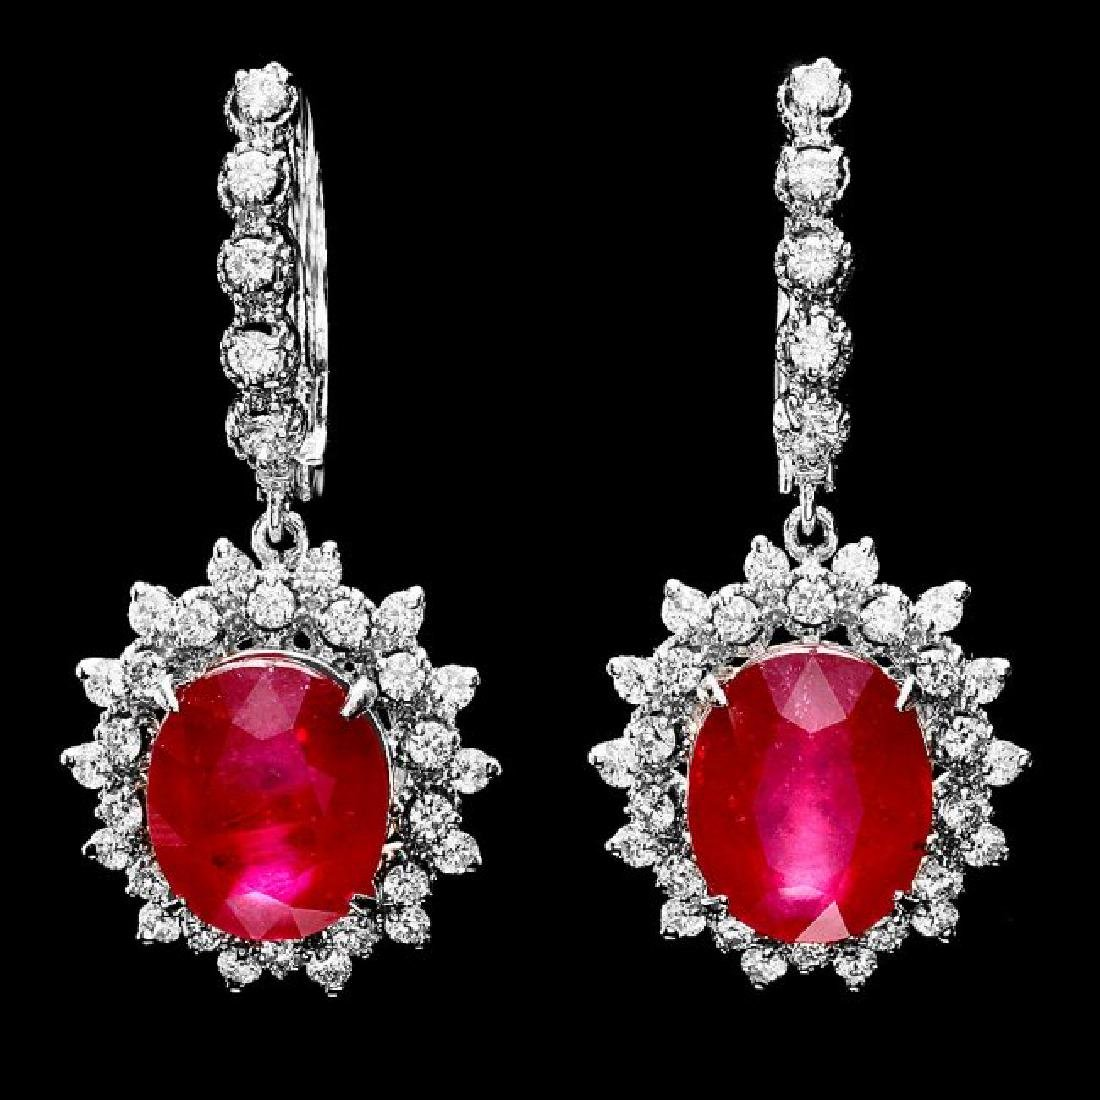 14k Gold 14.15ct Ruby 1.80ct Diamond Earrings